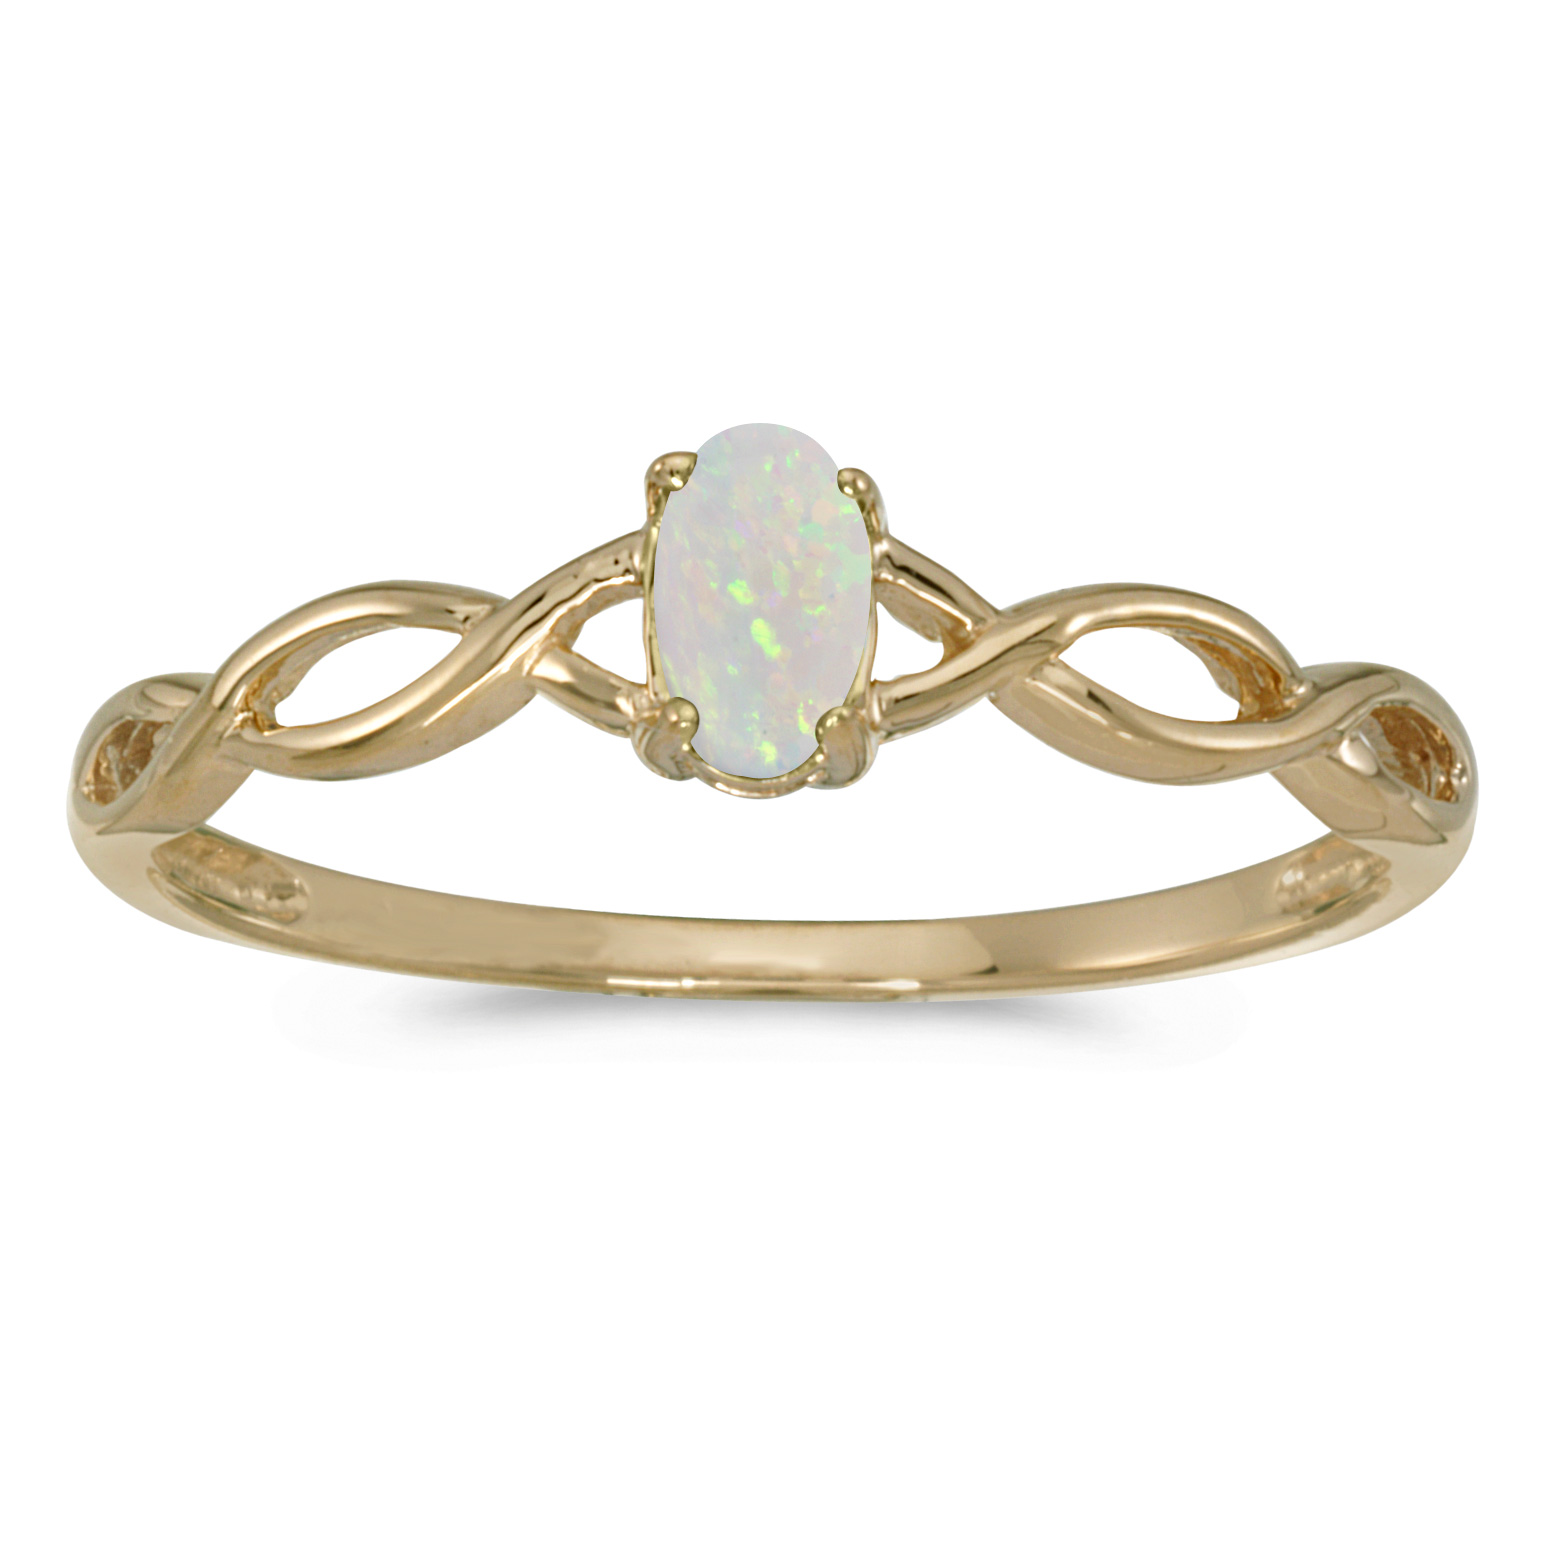 10k Yellow Gold Oval Opal Ring by